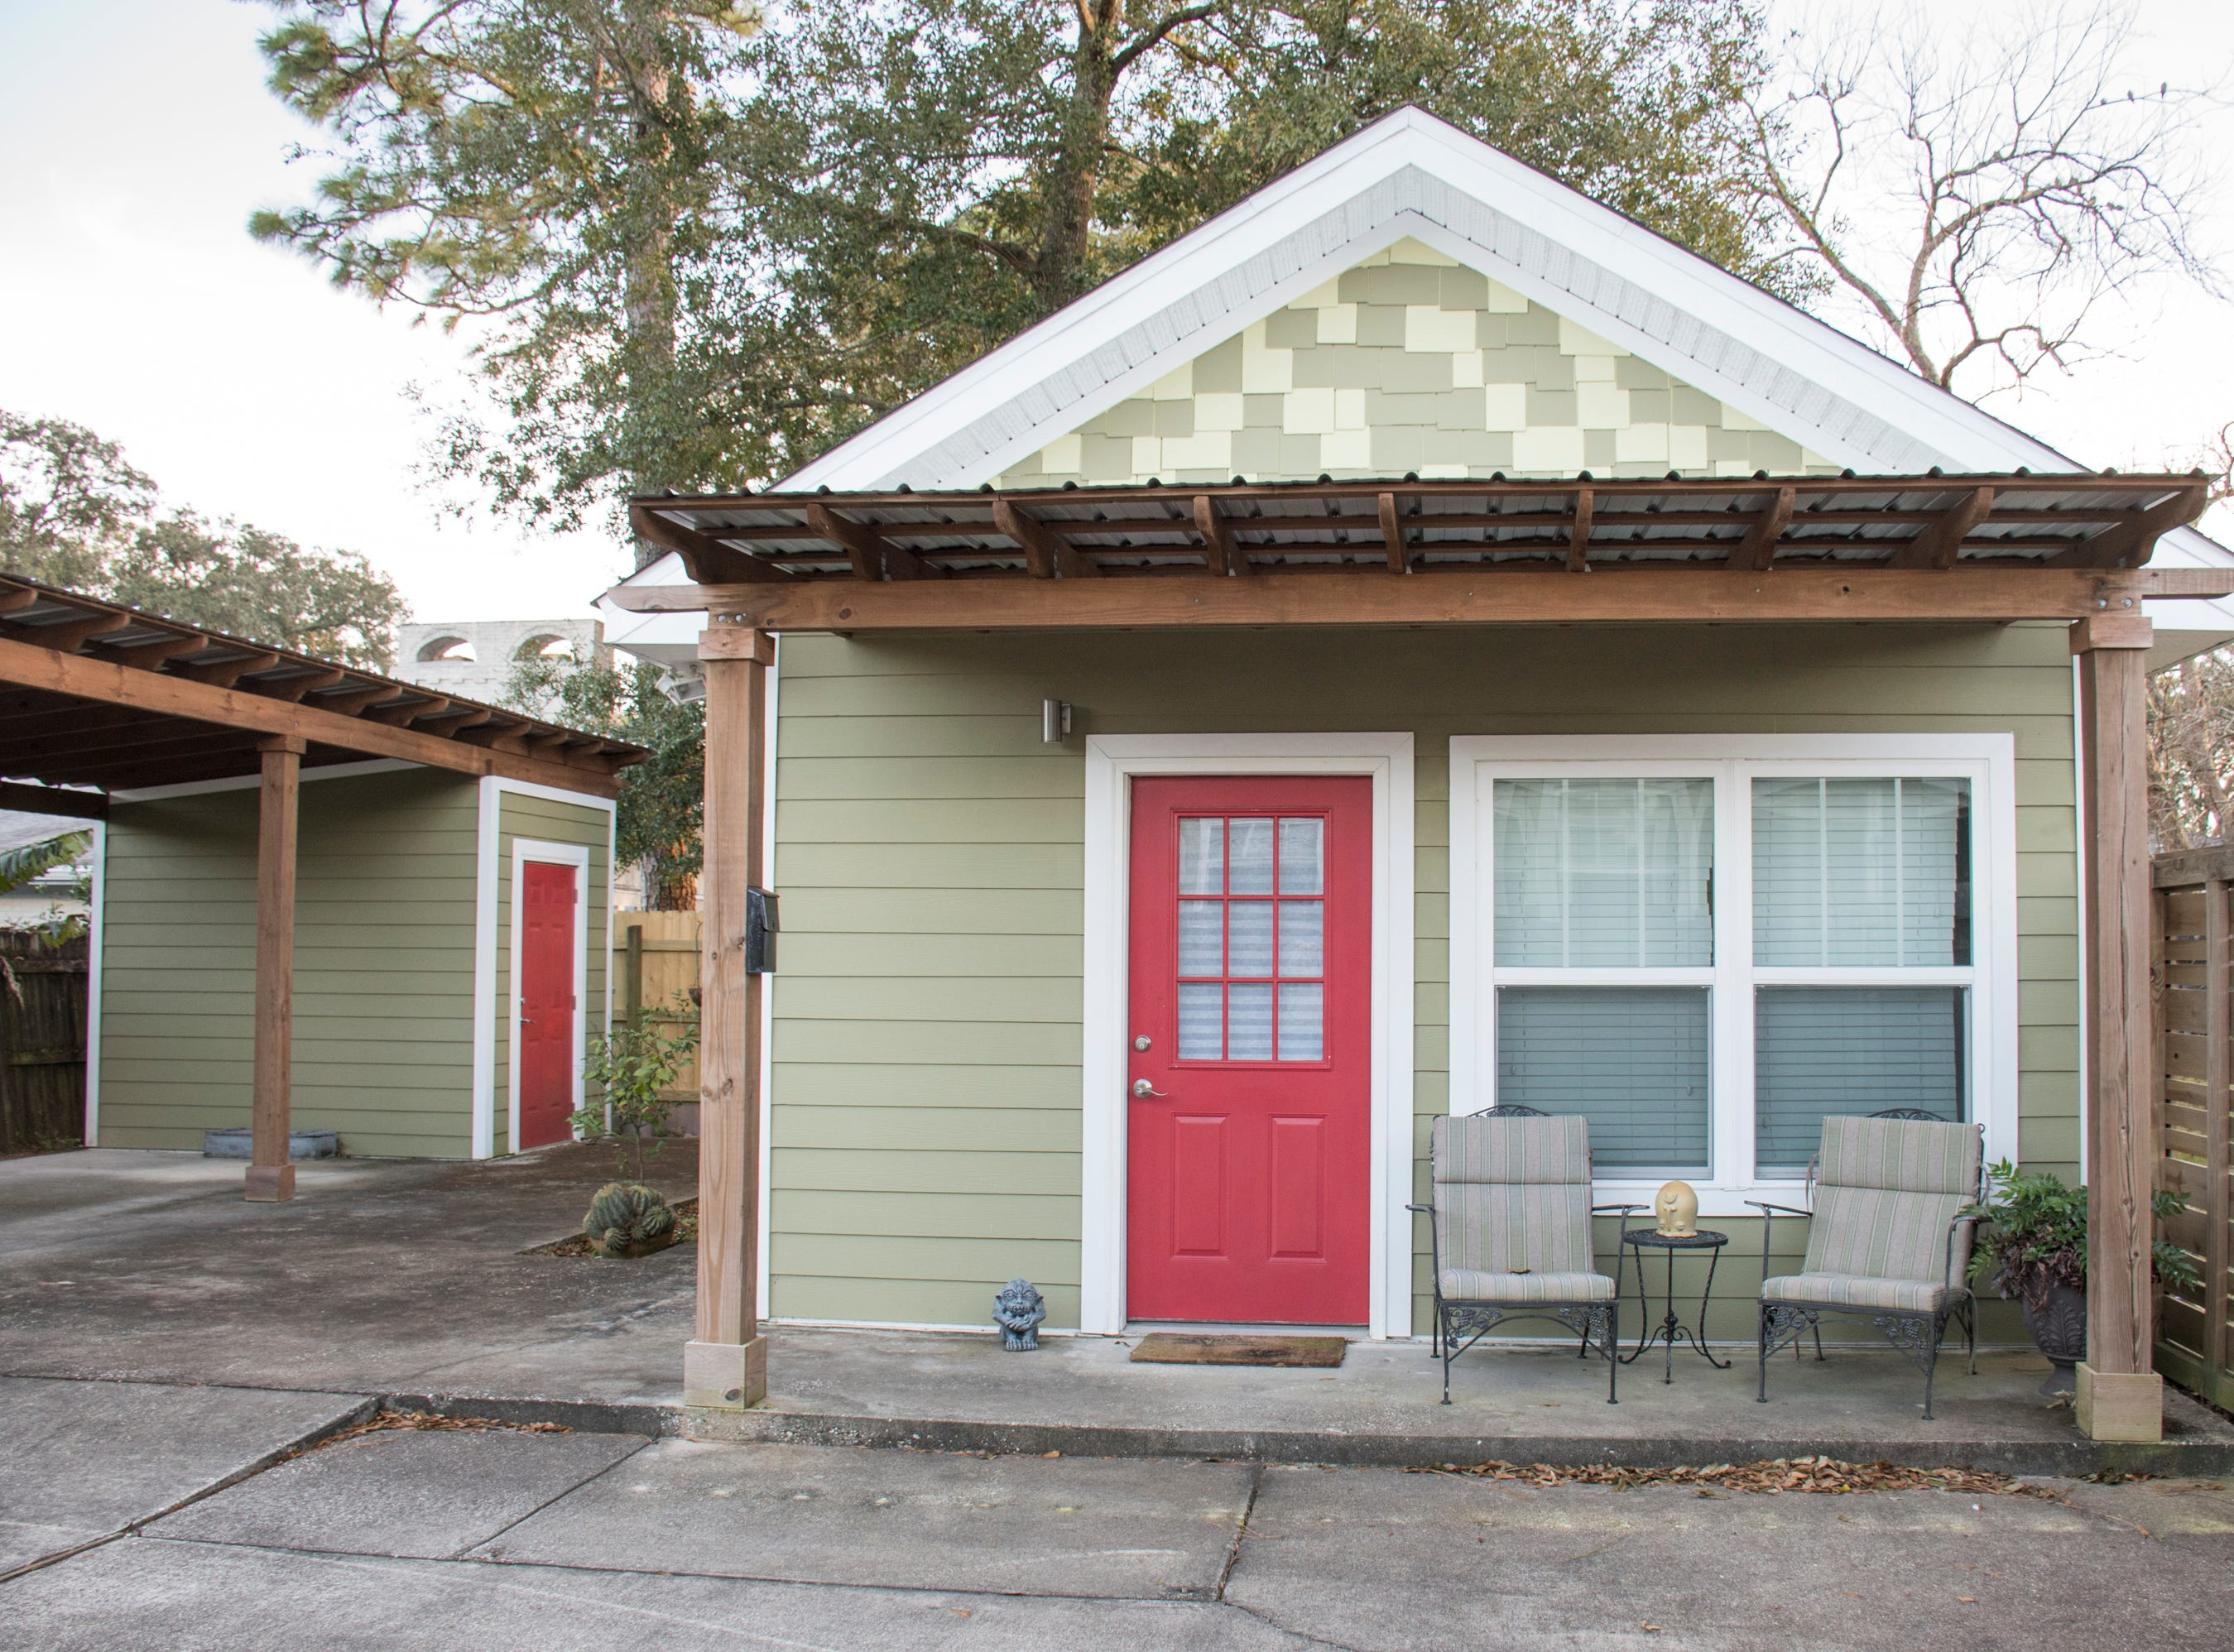 The Rickmon's have an Accessory Dwelling Unit, including its own covered carport, behind their house in the East Hill neighborhood of Pensacola on Thursday, January 31, 2019.  The stand alone building is a 375 square foot studio apartment that they rent out.